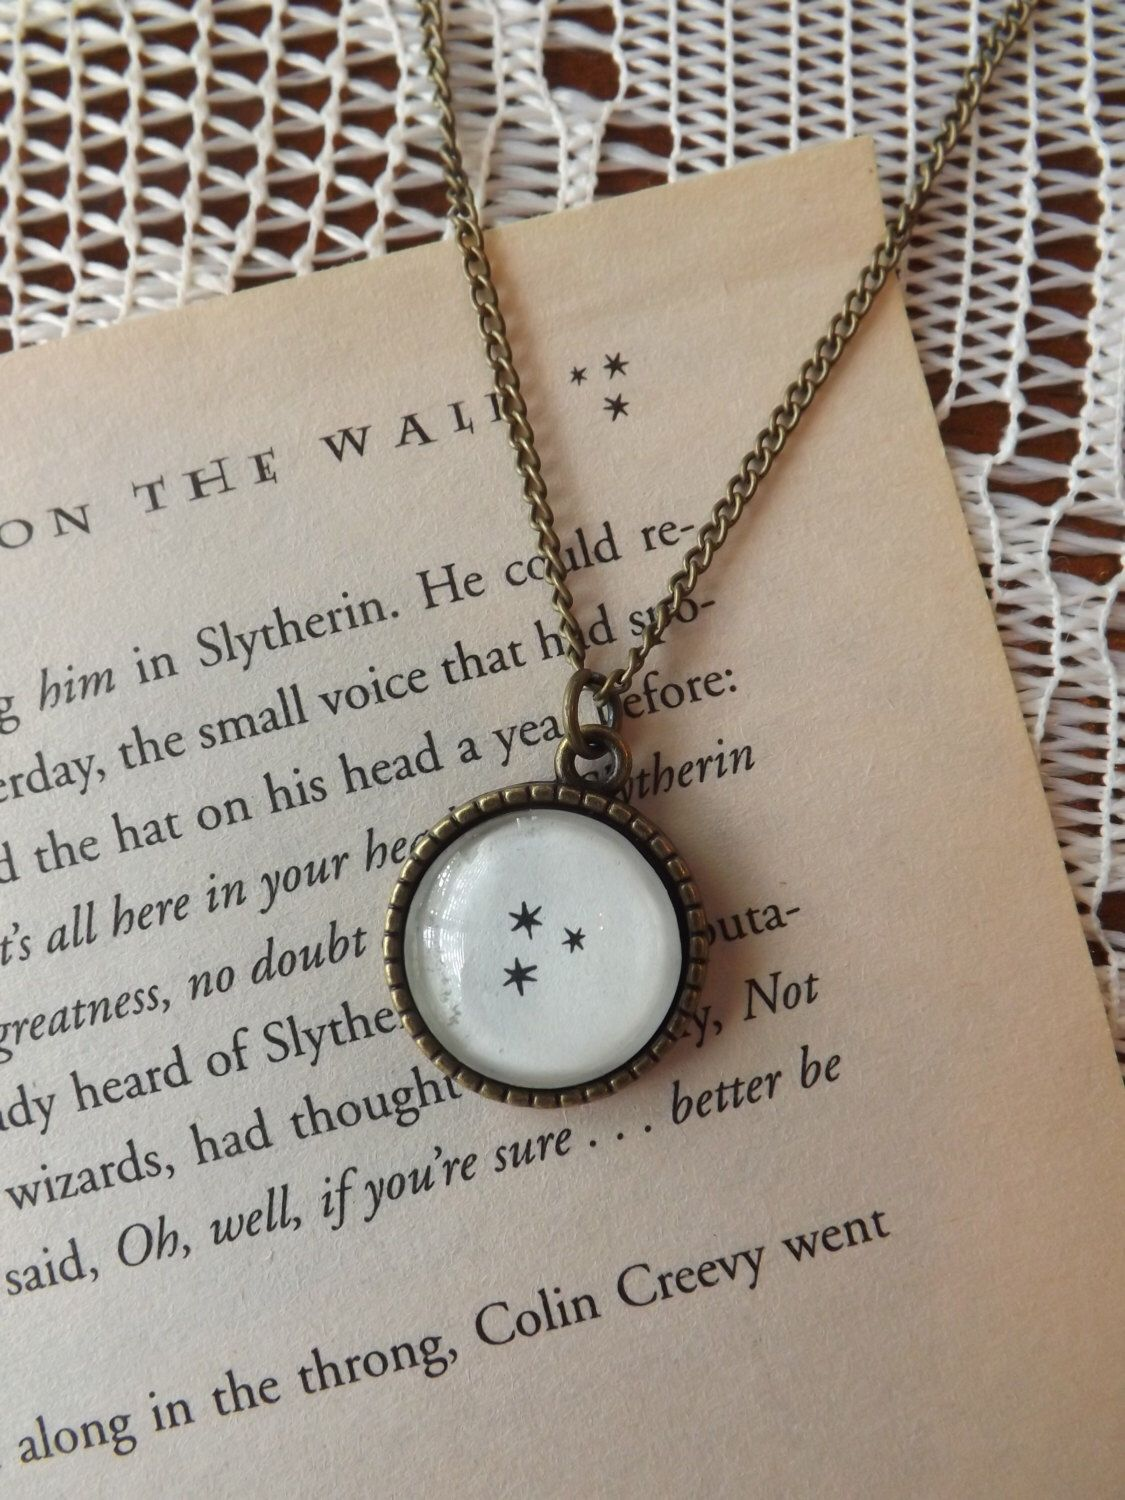 Harry Potter Chapter Stars Necklace Charm Made Using An Actual Book Page Harry Potter Necklace Star Necklace Potter